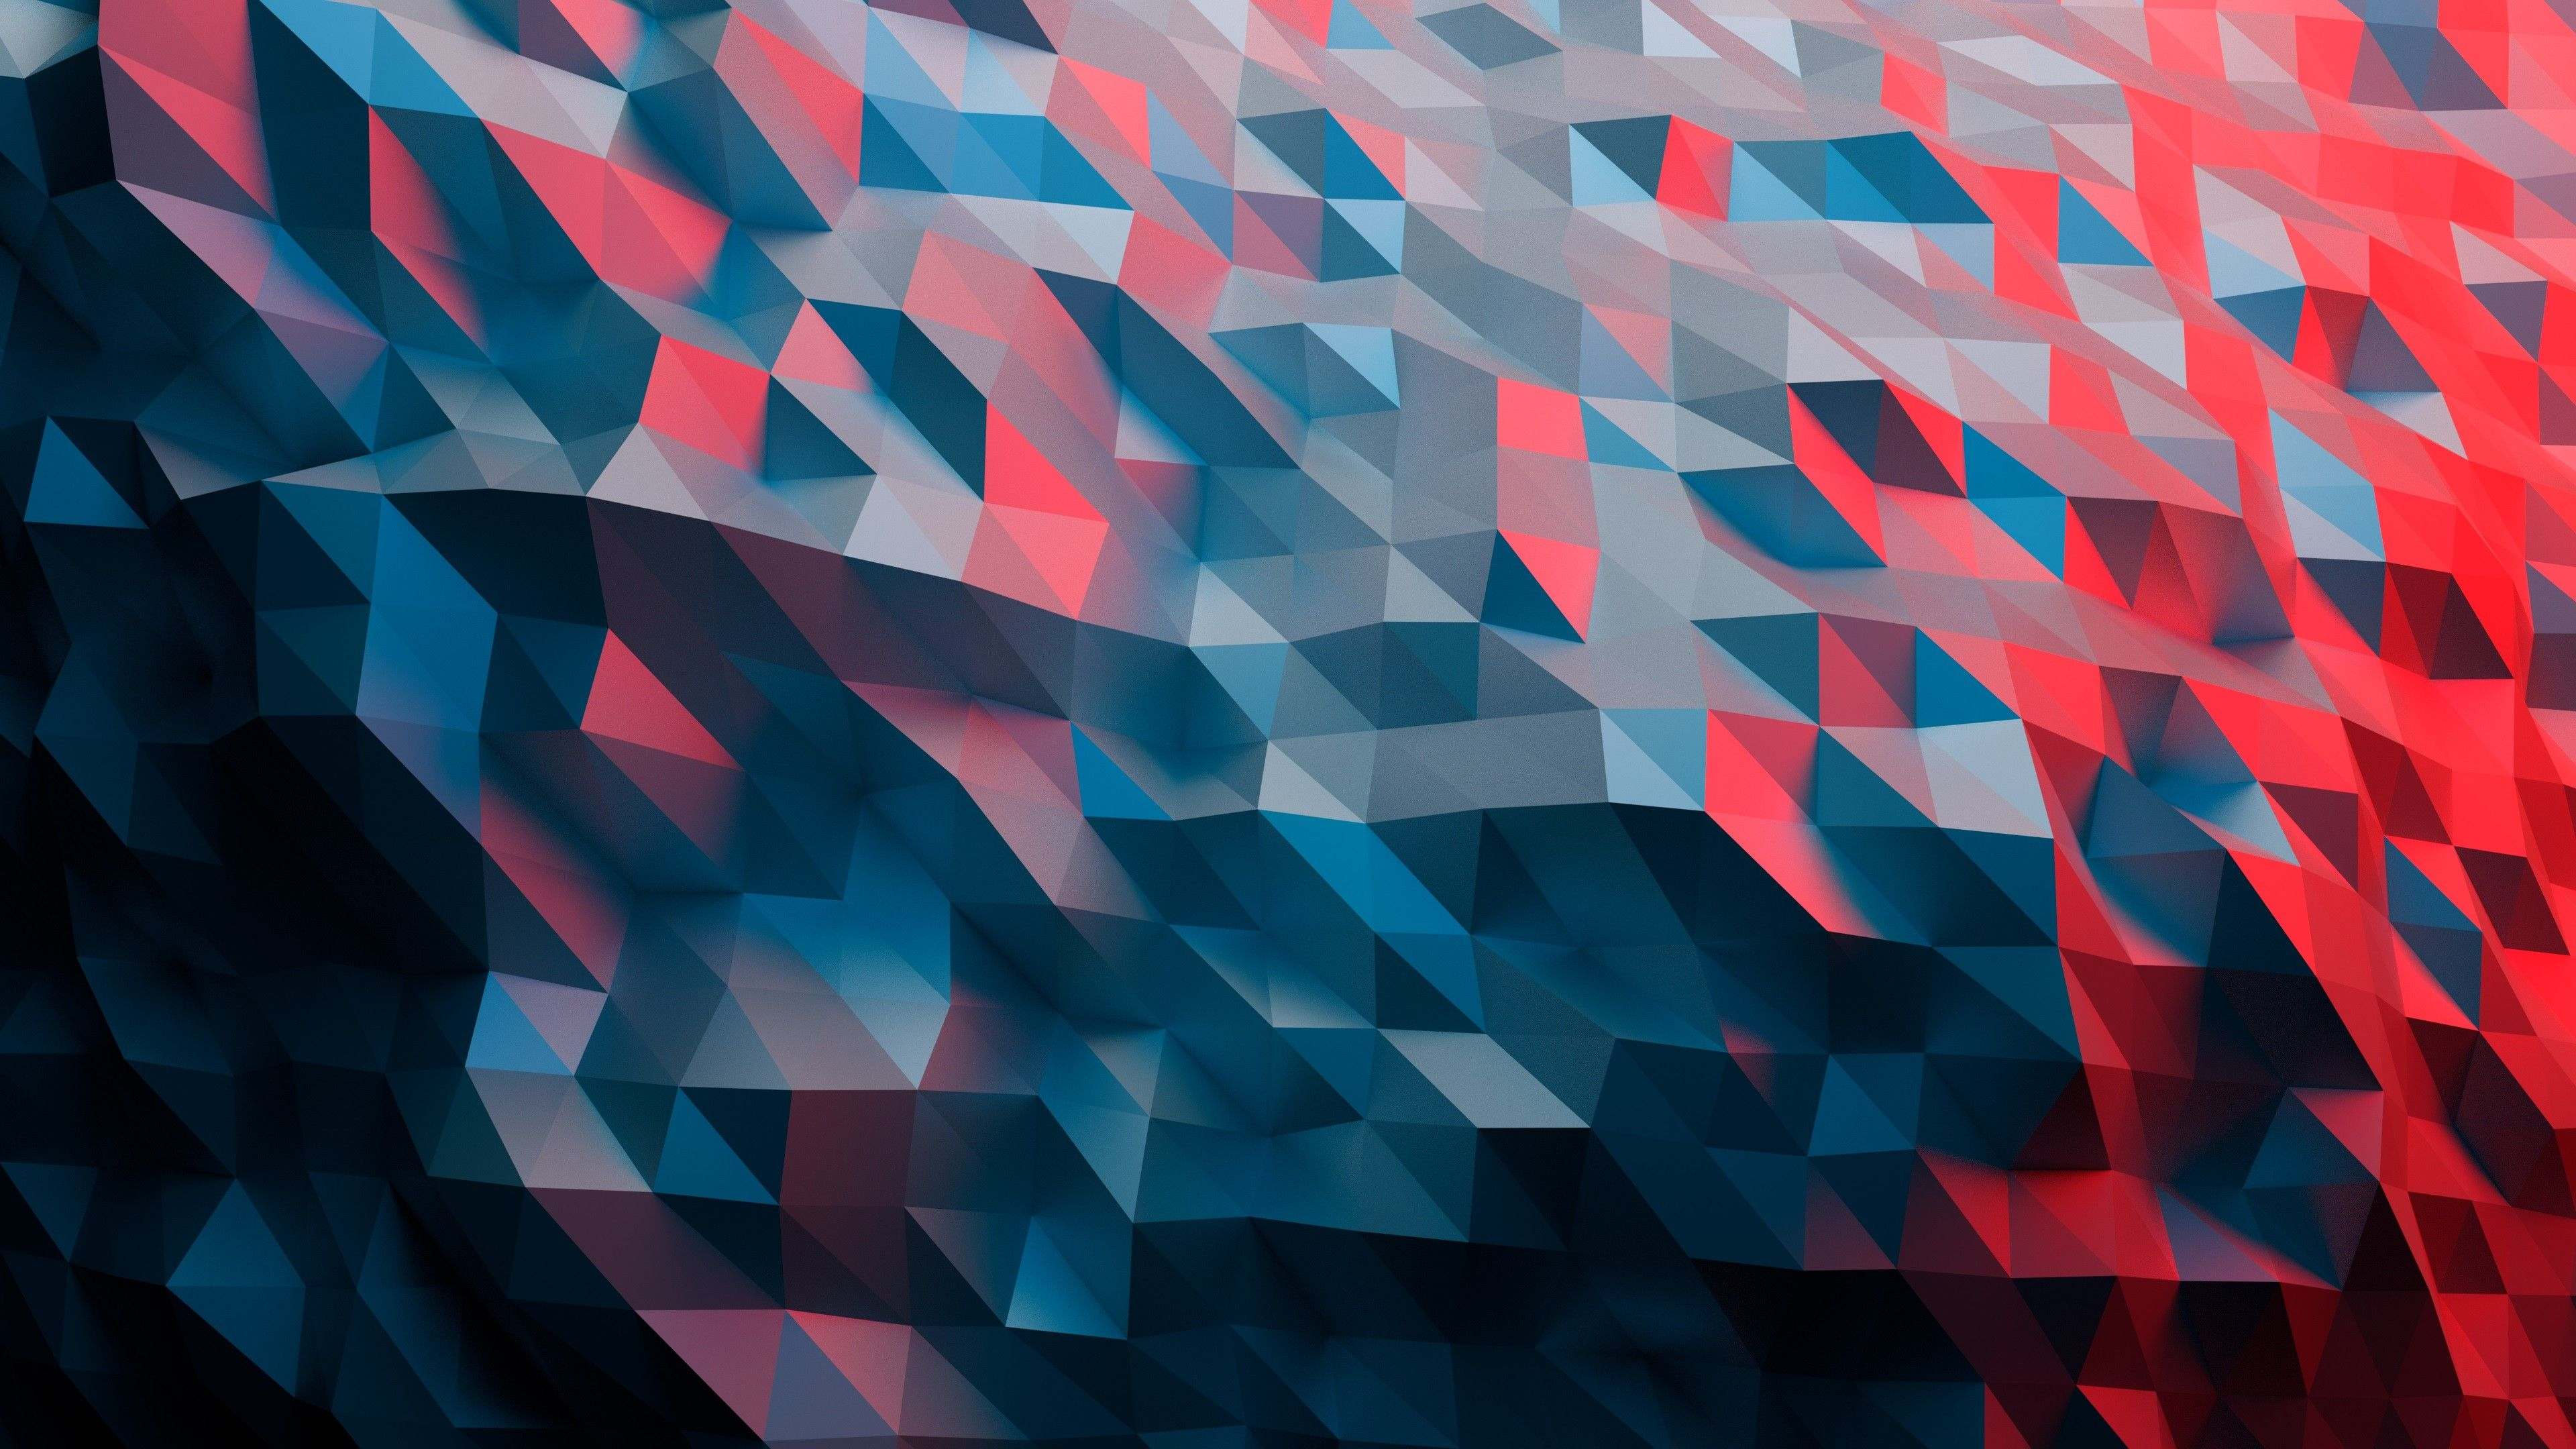 General 3840x2160 Low Poly Abstract Abstract Wallpaper 3840x2160 Wallpaper Abstract Geometric desktop wallpaper 4k